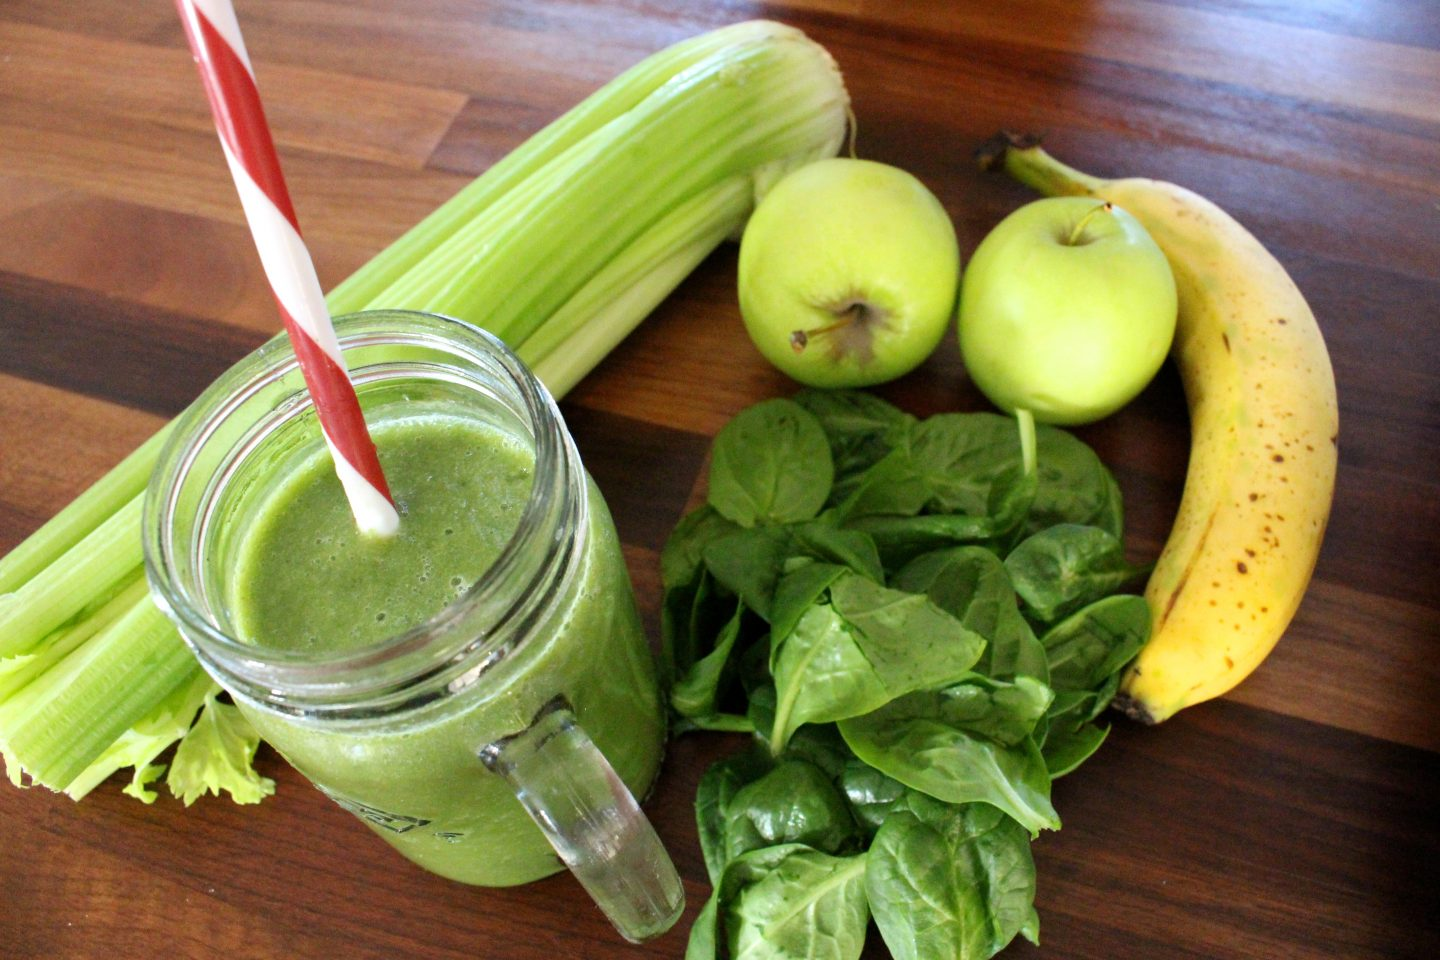 Green Smoothie, Healthy Nutella & the Boss Review